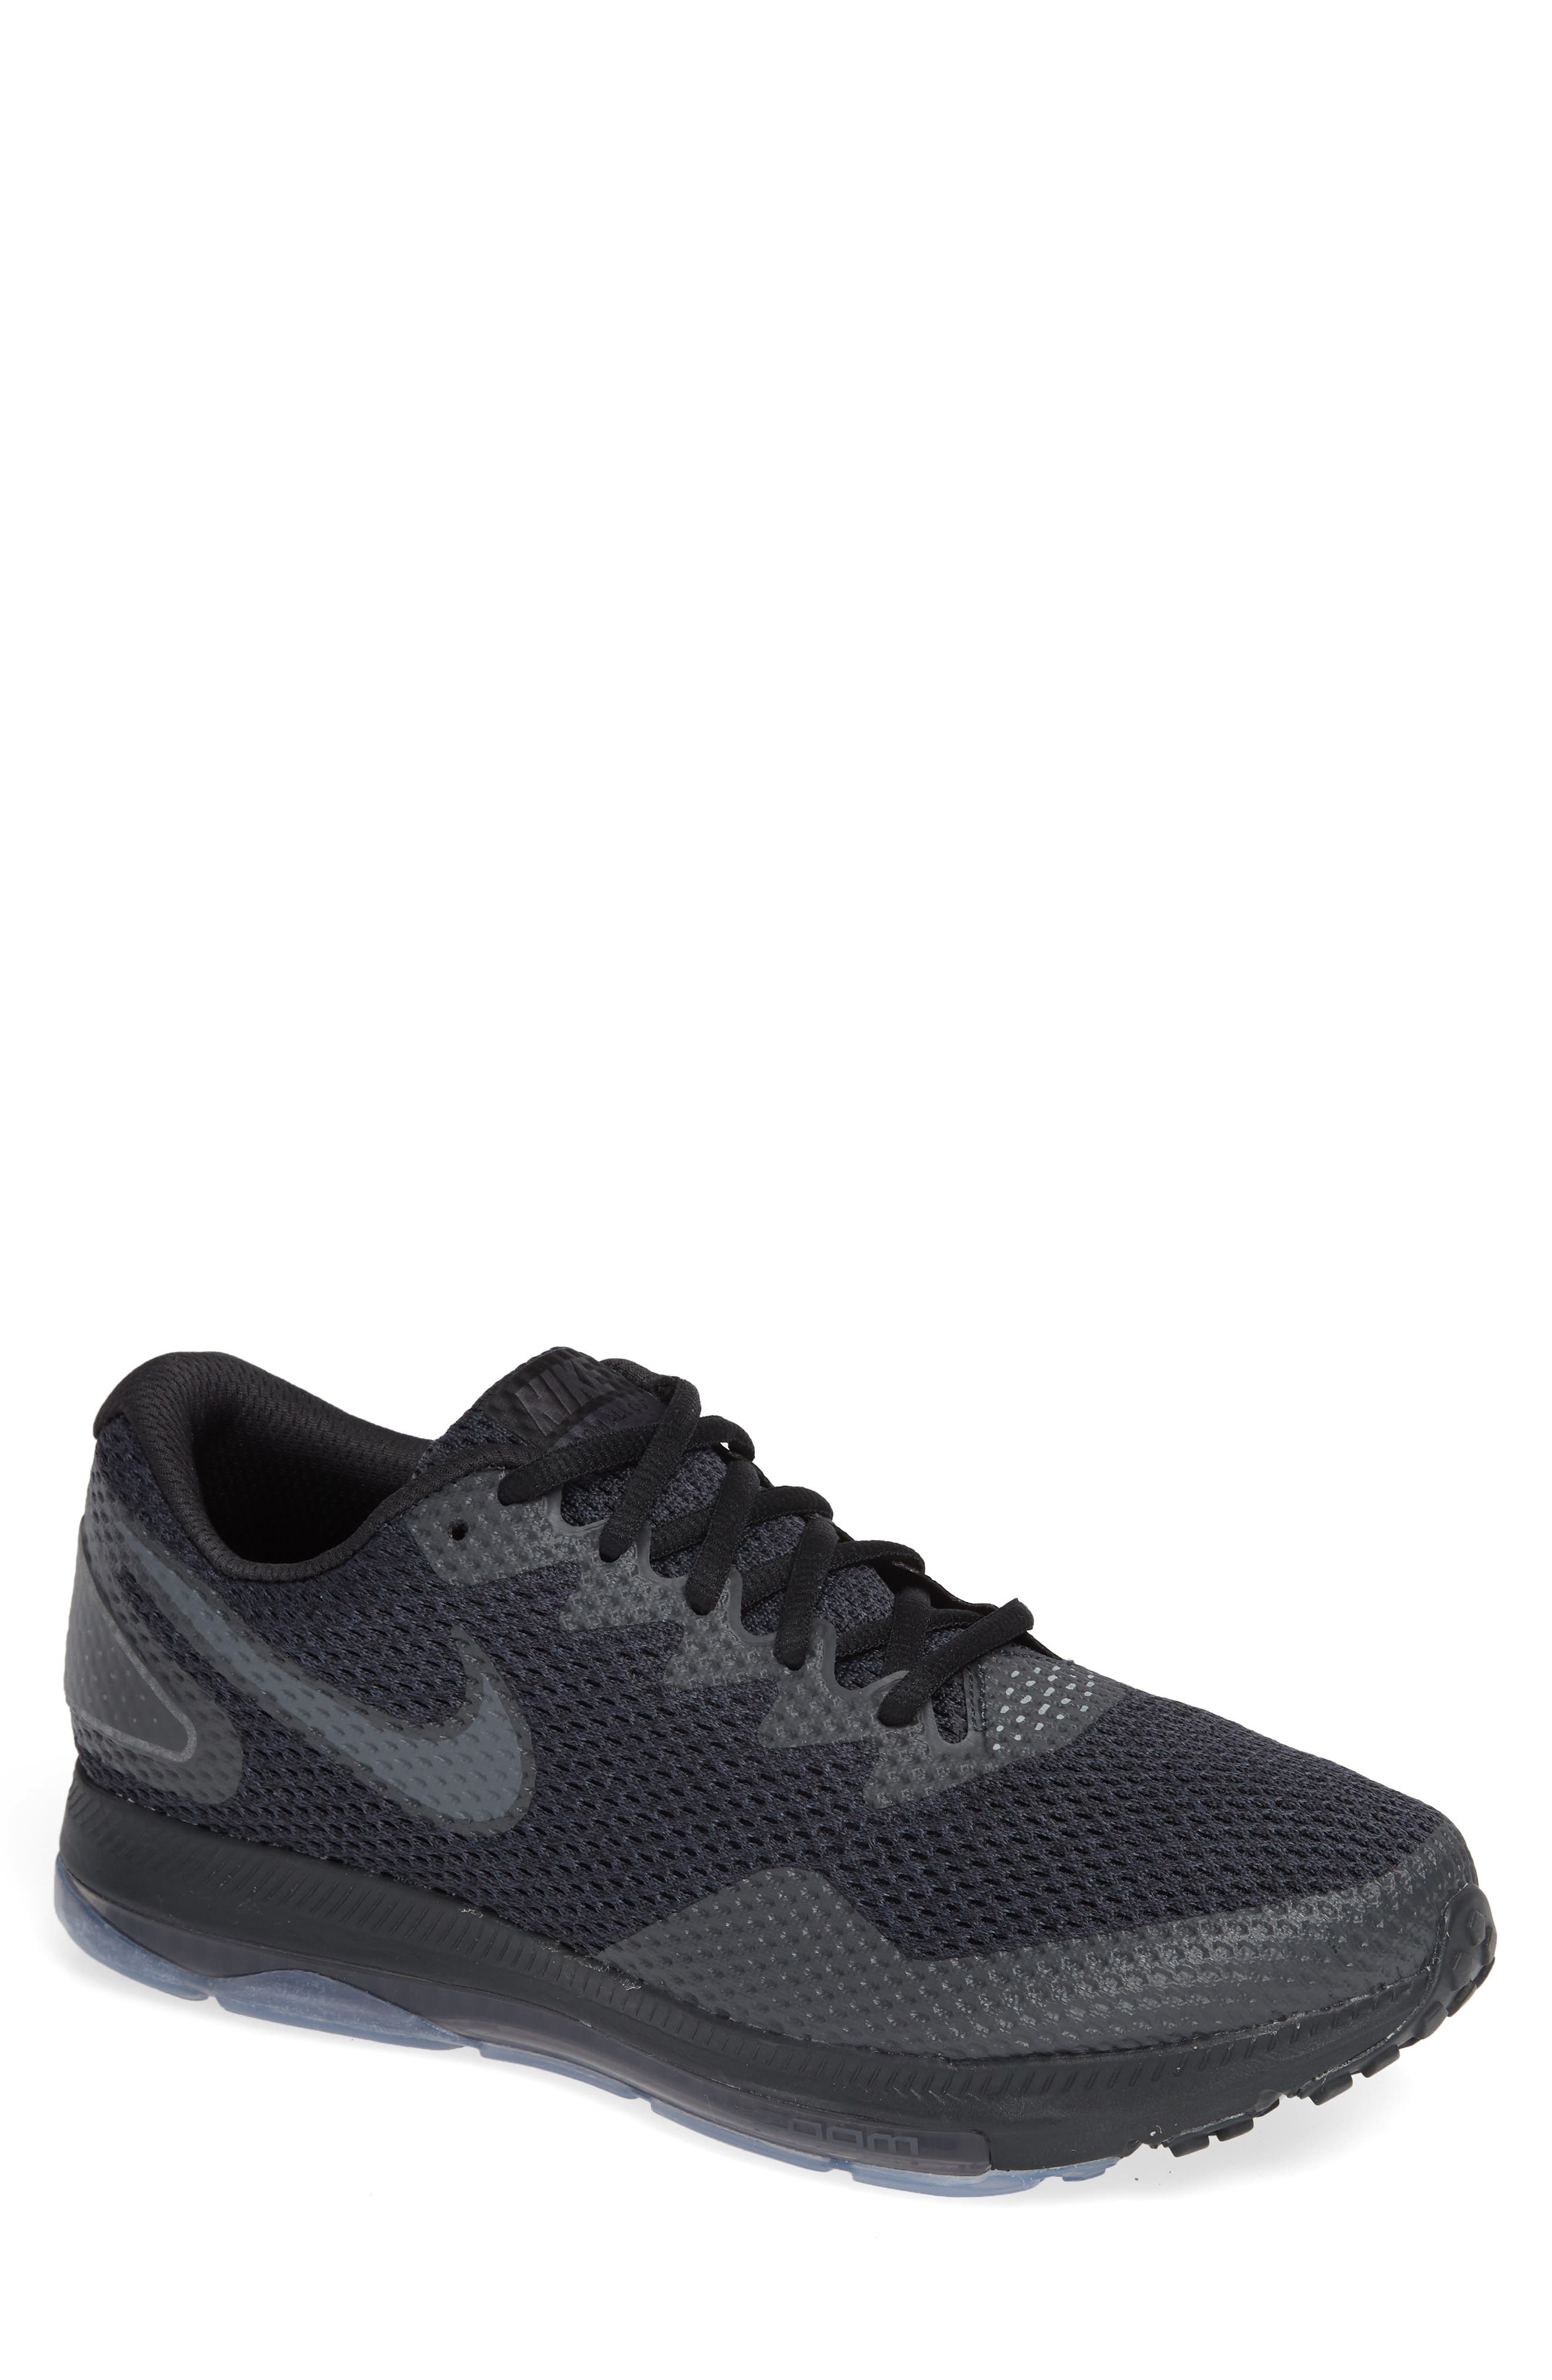 Zoom All Out Low 2 Running Shoe,                         Main,                         color, Black/ Dark Grey/ Anthracite